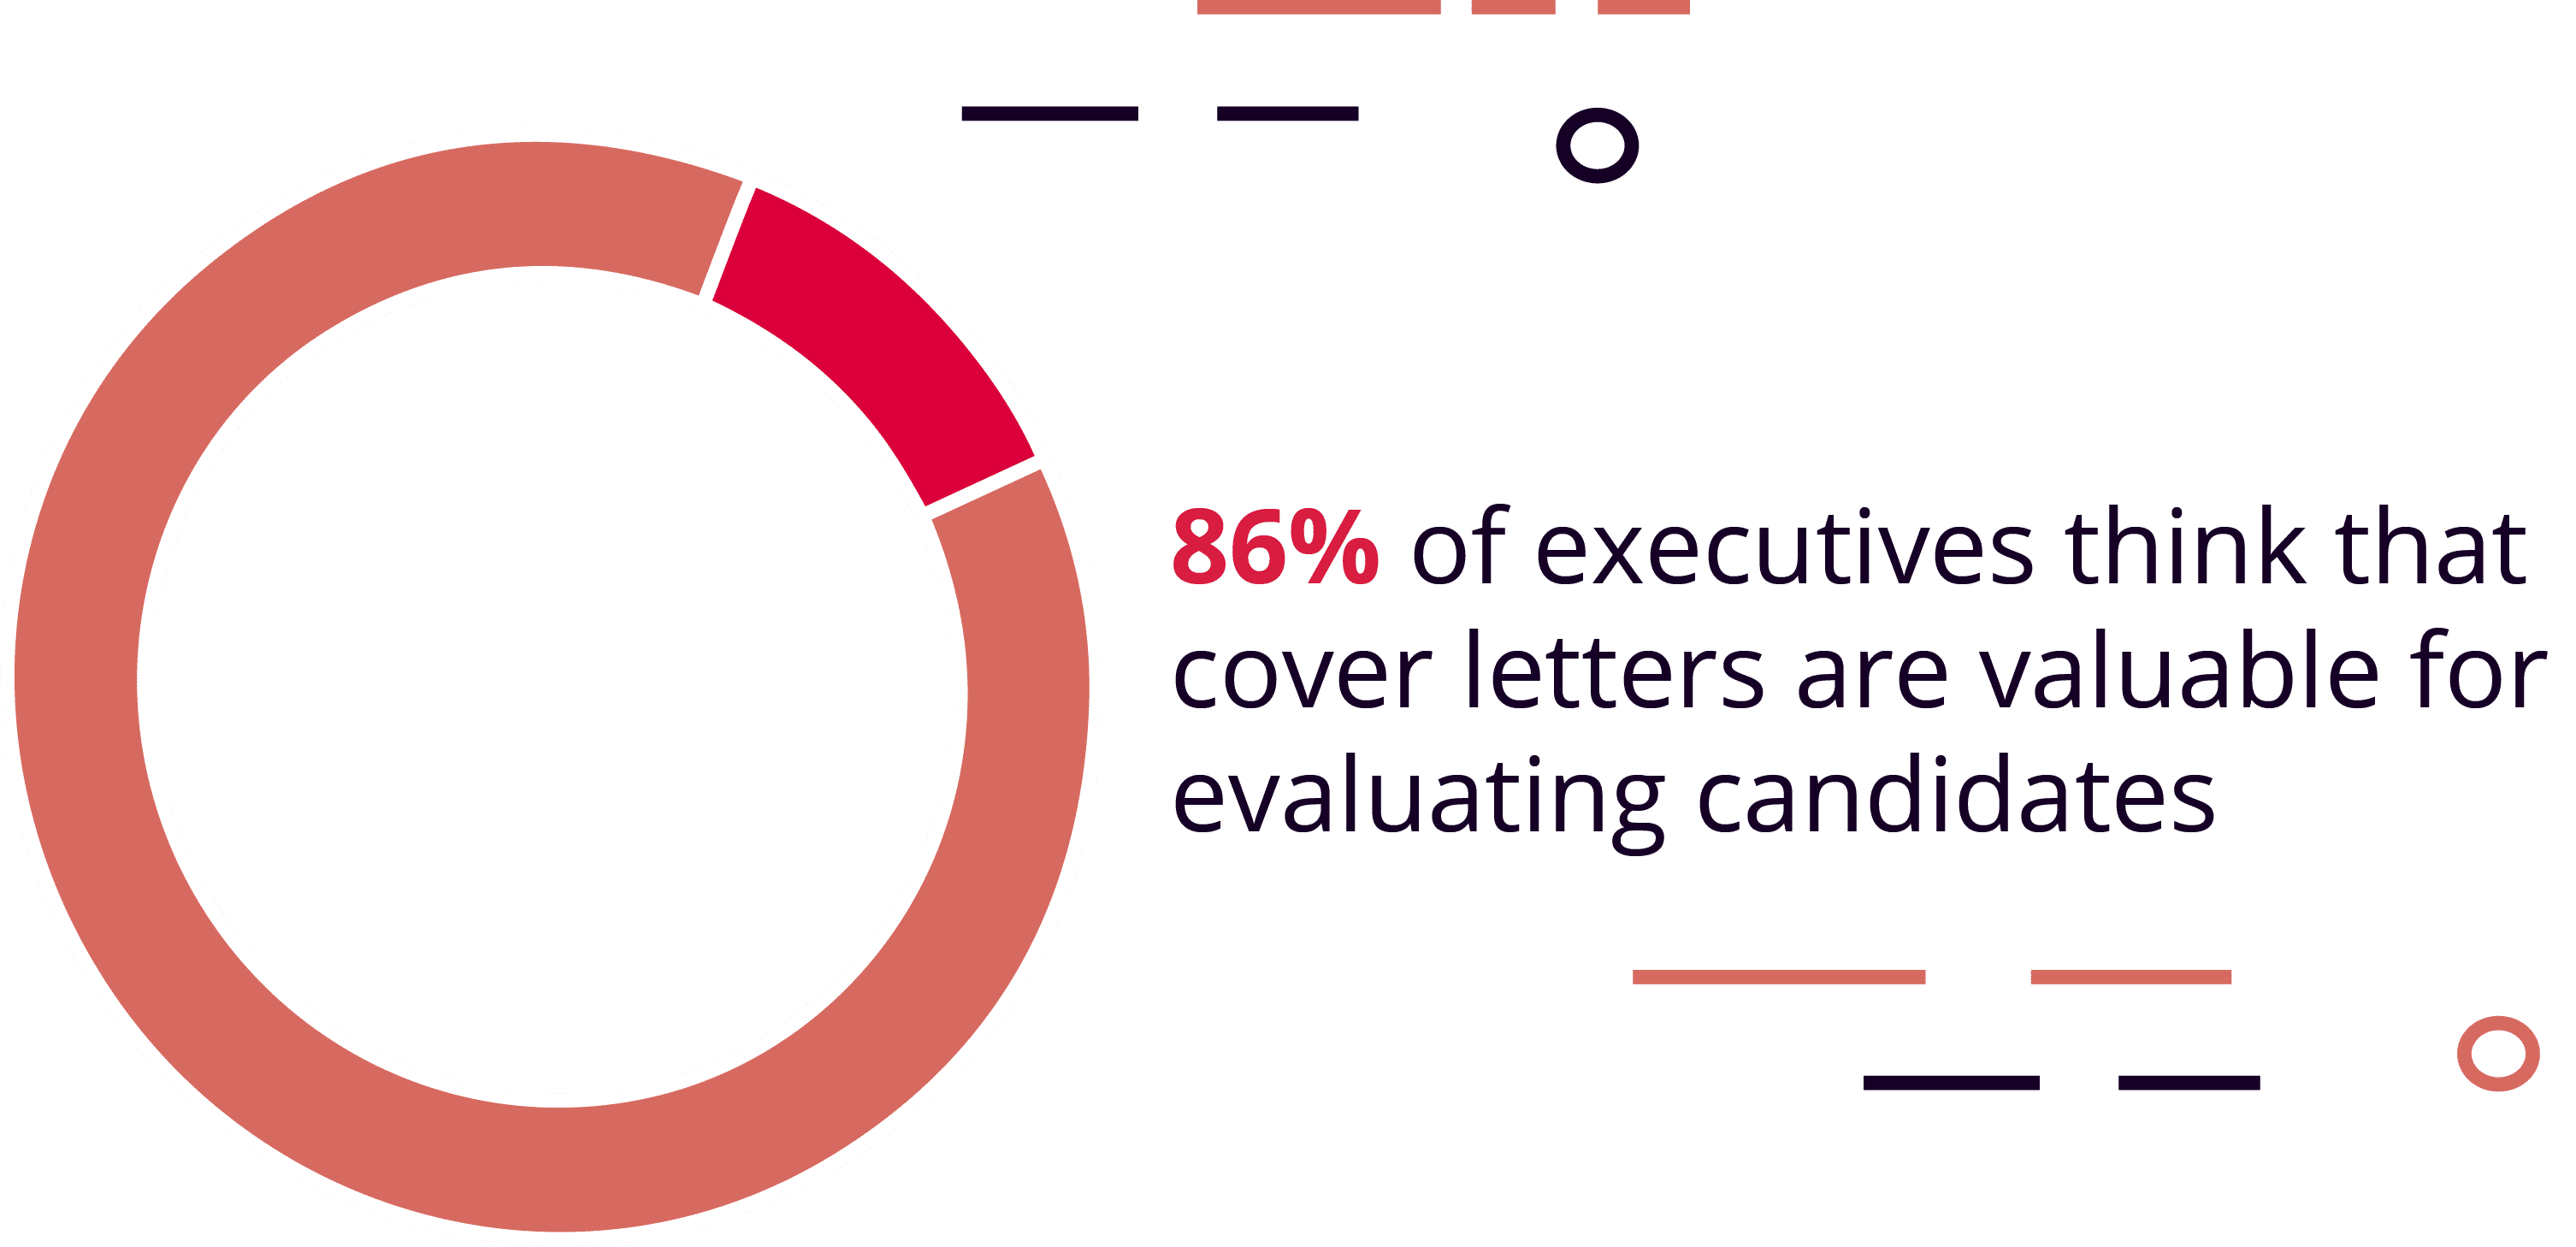 86% of Executives Think That Cover Letters Are Valuable for Evaluating Candidates